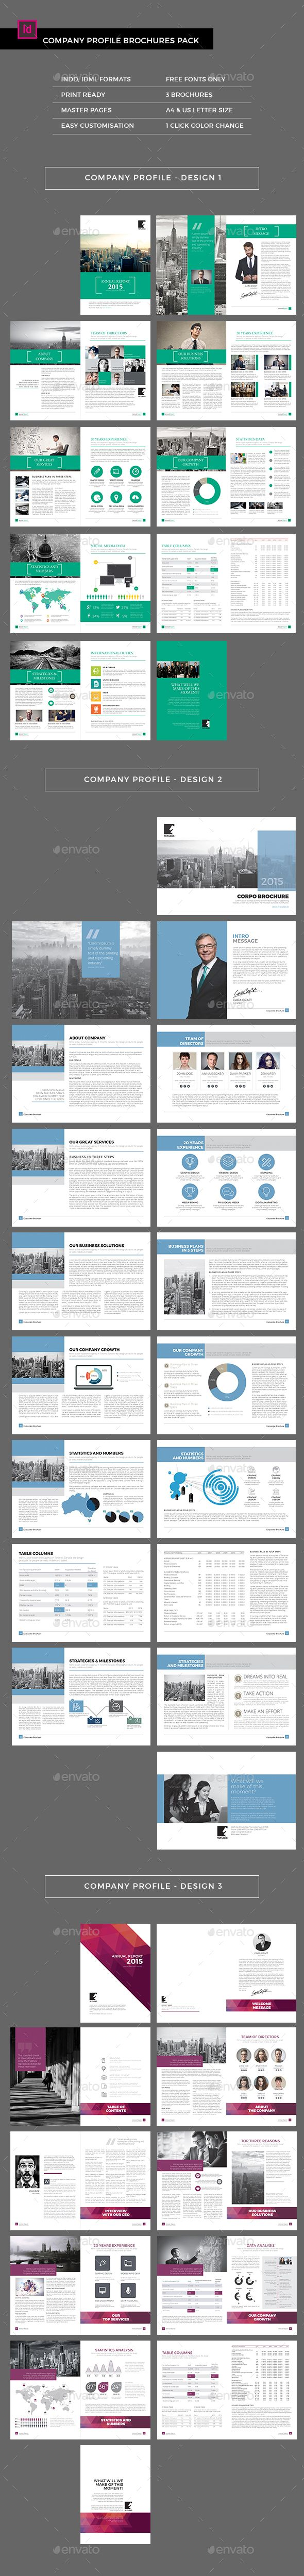 company profile brochure template - 52 best images about free indesign templates on pinterest